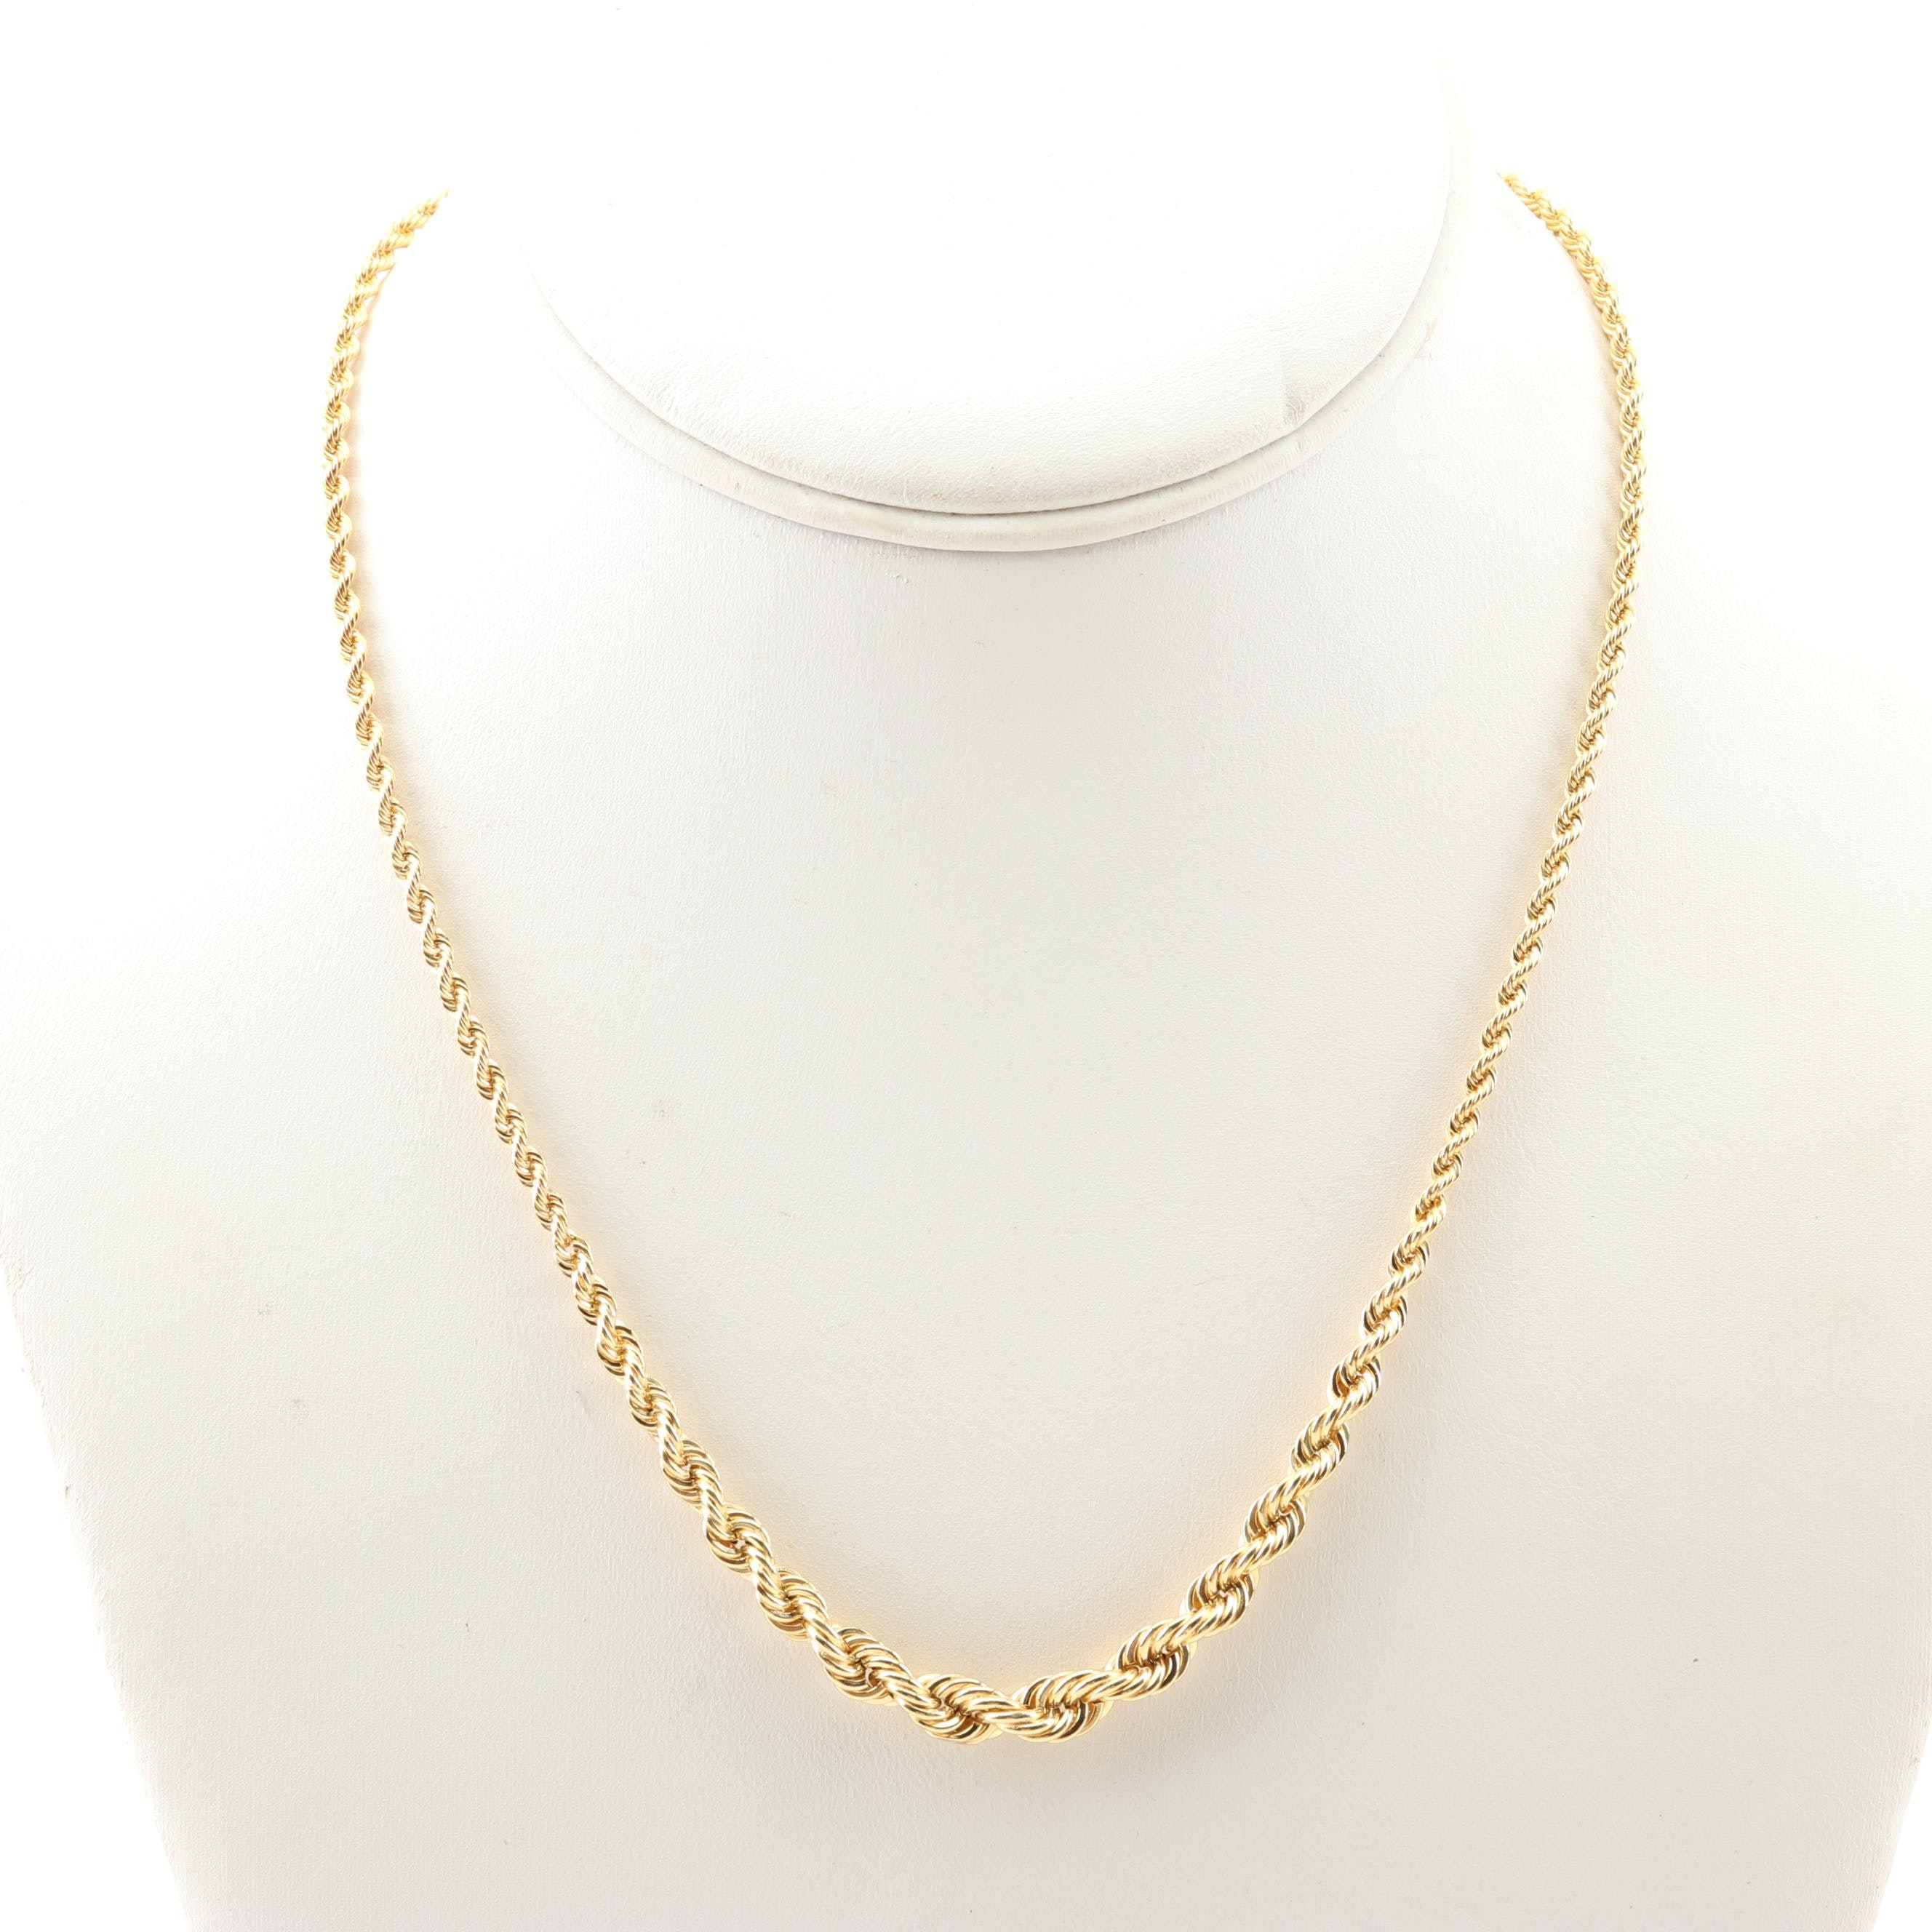 18K Yellow Gold Graduated Rope Chain Necklace